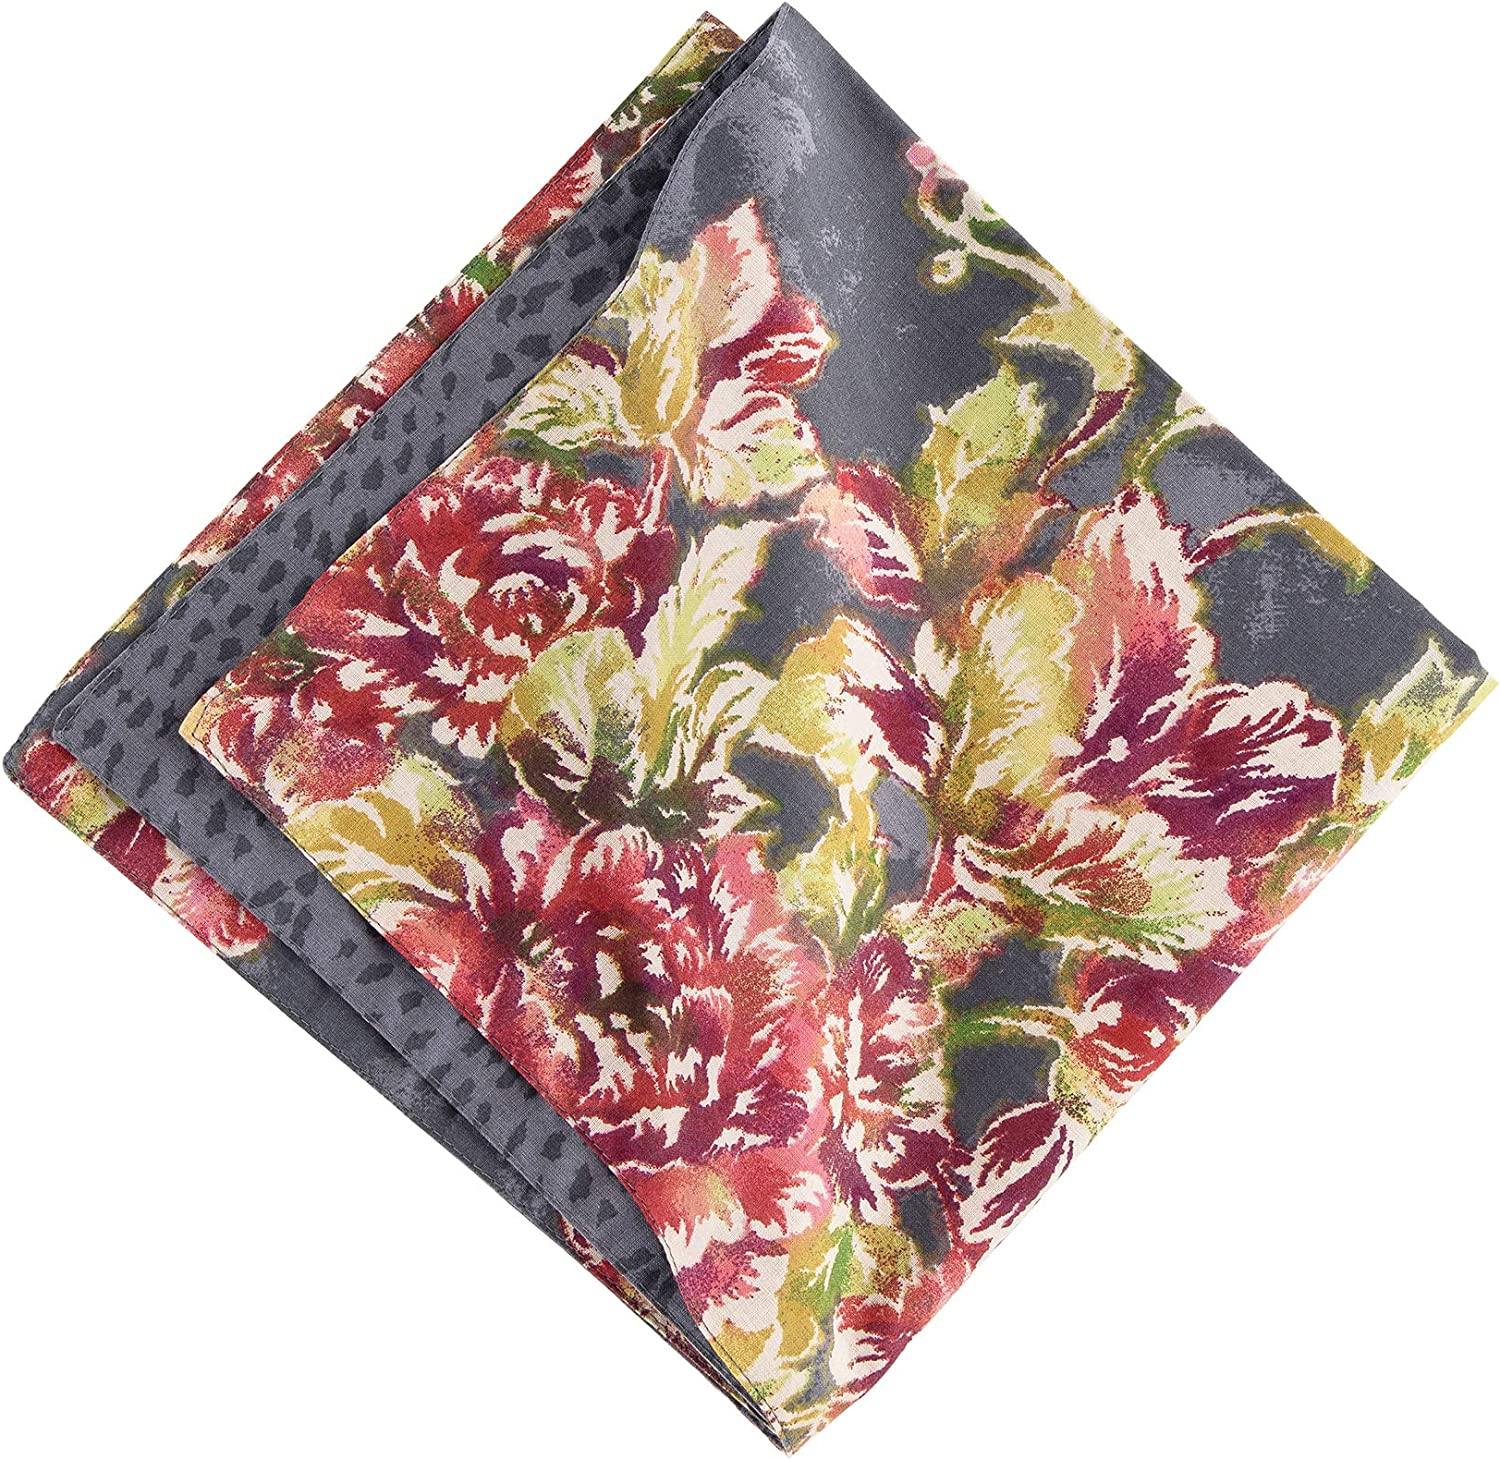 Max 46% OFF CF Home Regina Napkin Set of 6 Free Shipping New Flor Cotton Reversible Oversized